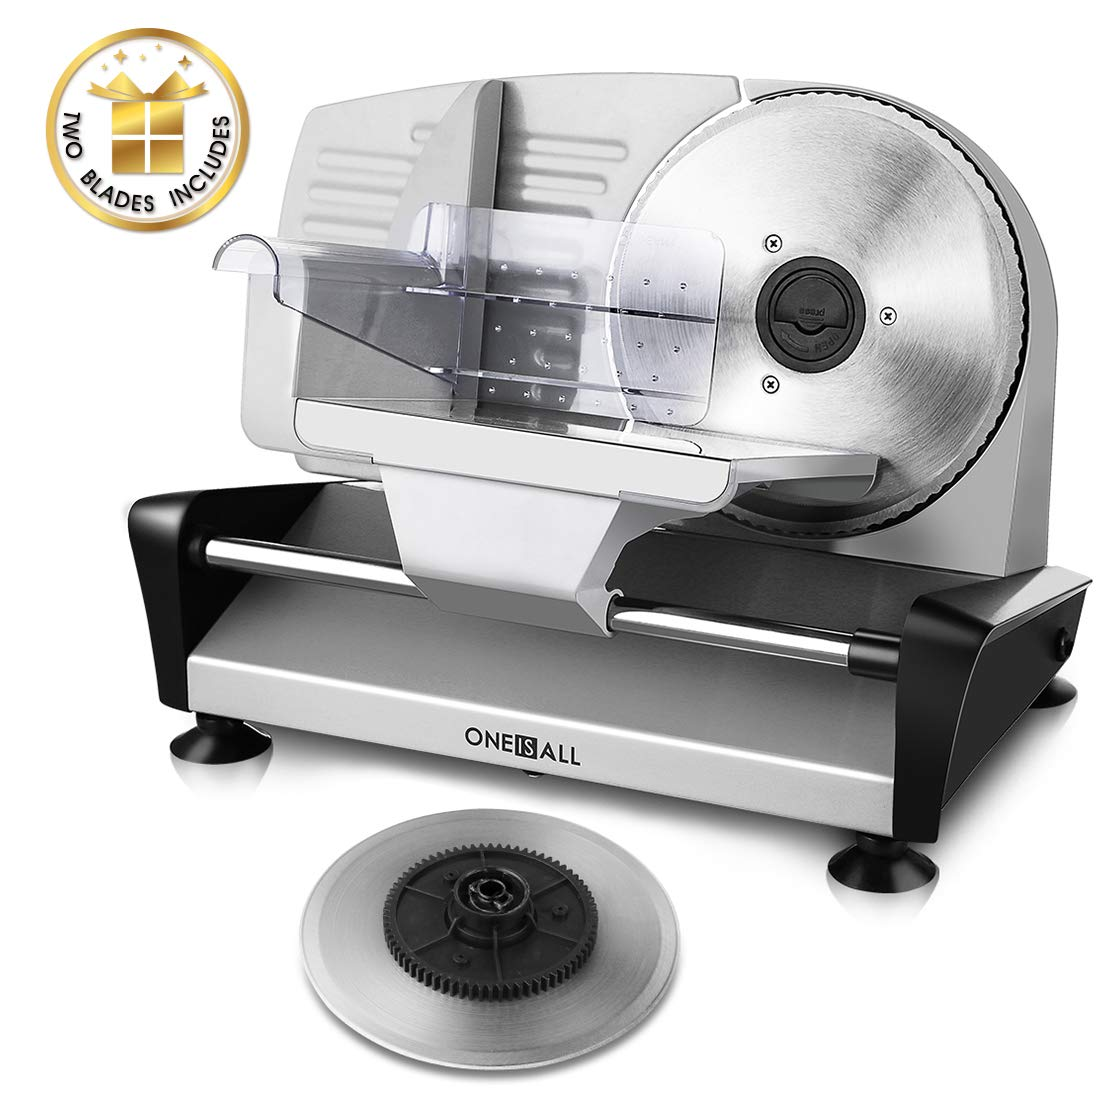 Meat Slicer Electric Deli Food Slicer with 2 Interchangeable Blades, Oneisall Removable 7.5 Stainless Steel Blade Food Carriage, Precisely Adjustable Thickness Cuts Meat, Non-Slip Feet 150W